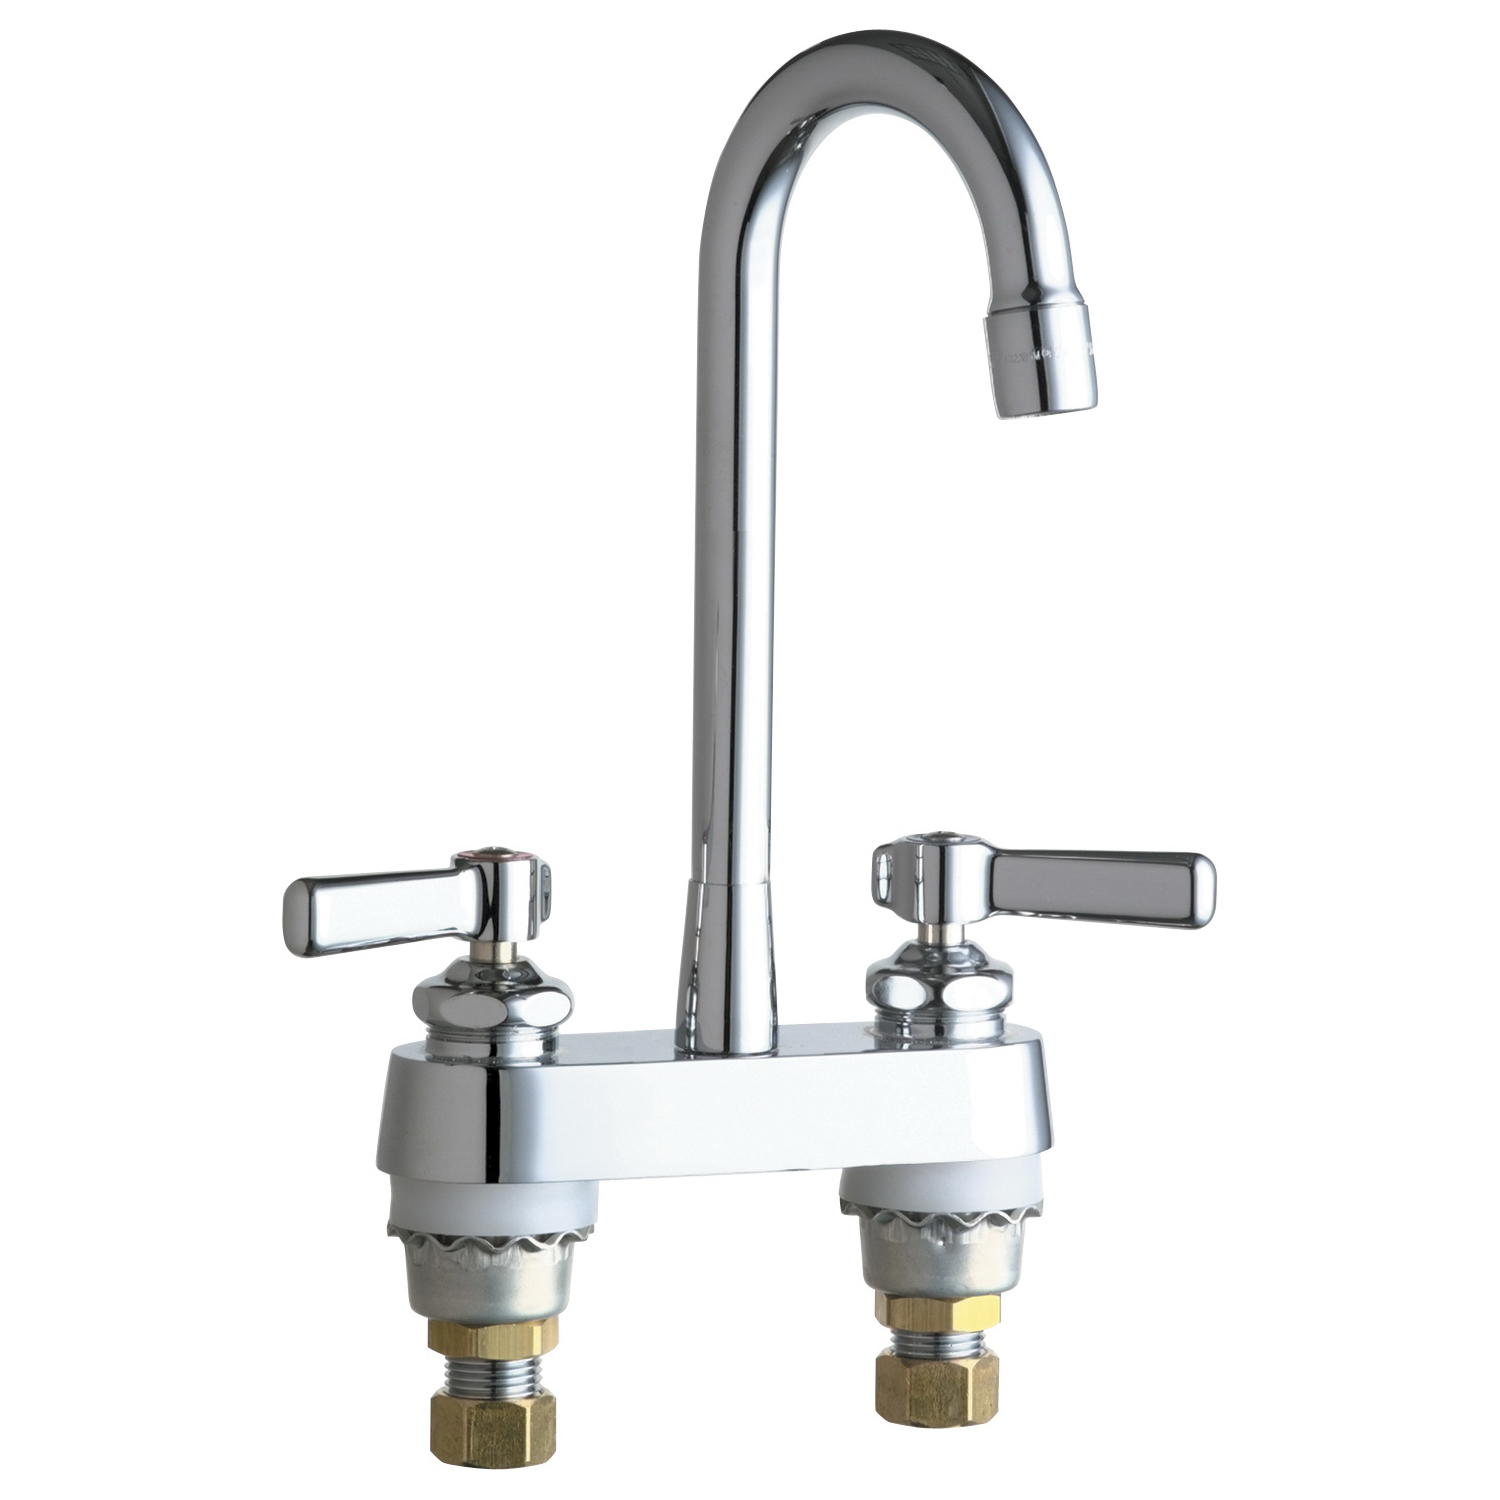 Chicago Faucet® 895-RGD1ABCP Lavatory Sink Faucet, Chrome Plated, 2 Handles, 2.2 gpm